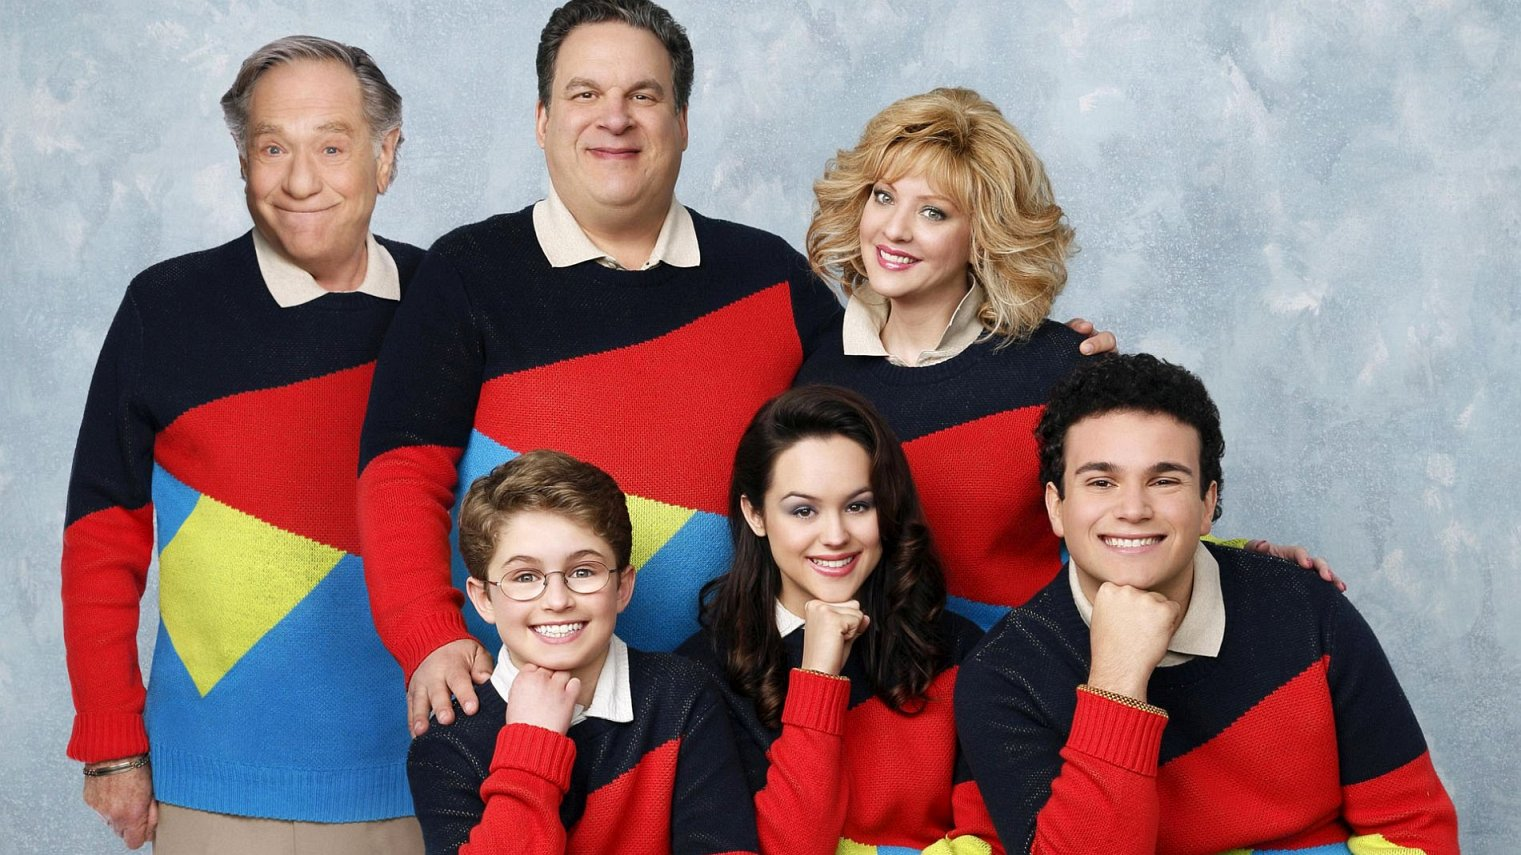 The Goldbergs S6 episode 5 watch online